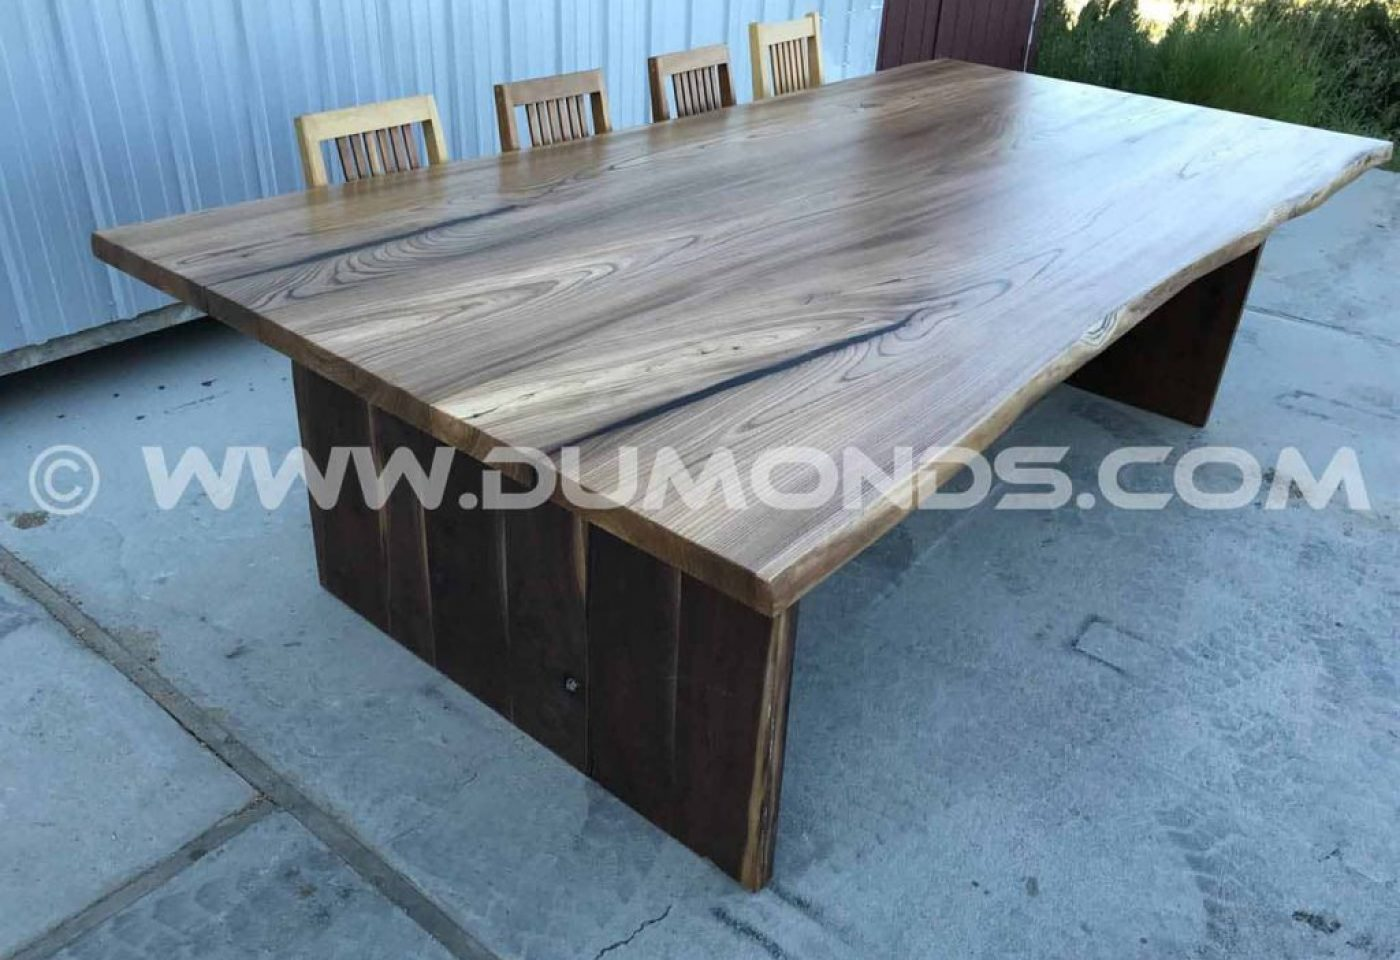 MICHIGAN URBAN ELM TREE TRANSFORMED INTO A LIVE EDGE TABLE